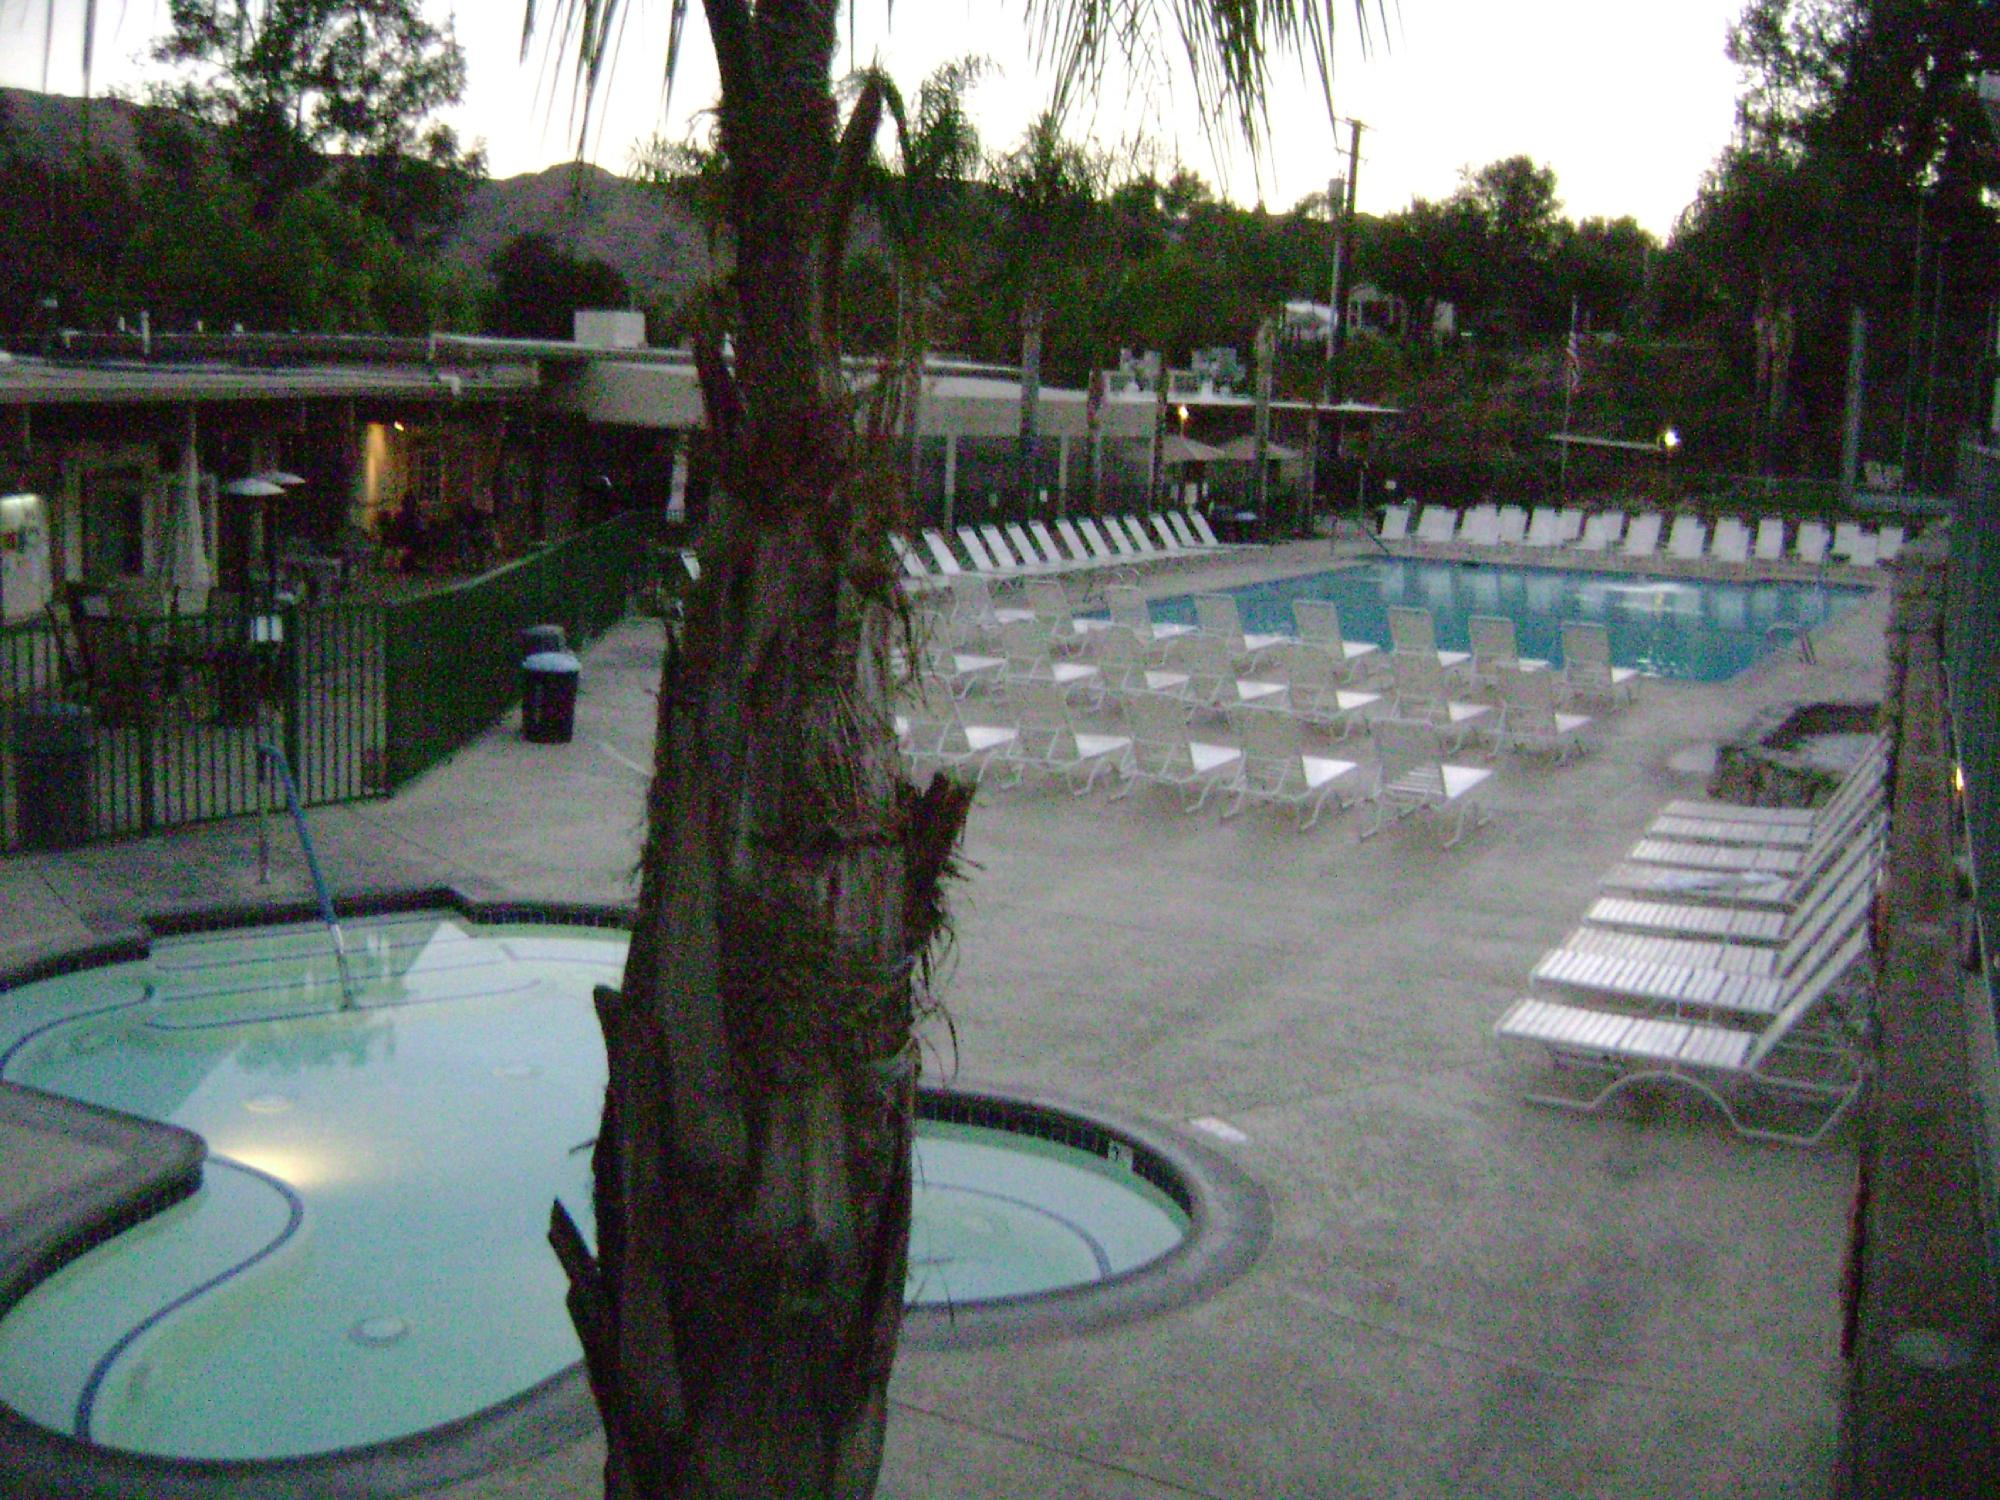 Glen Eden Nudist Resort